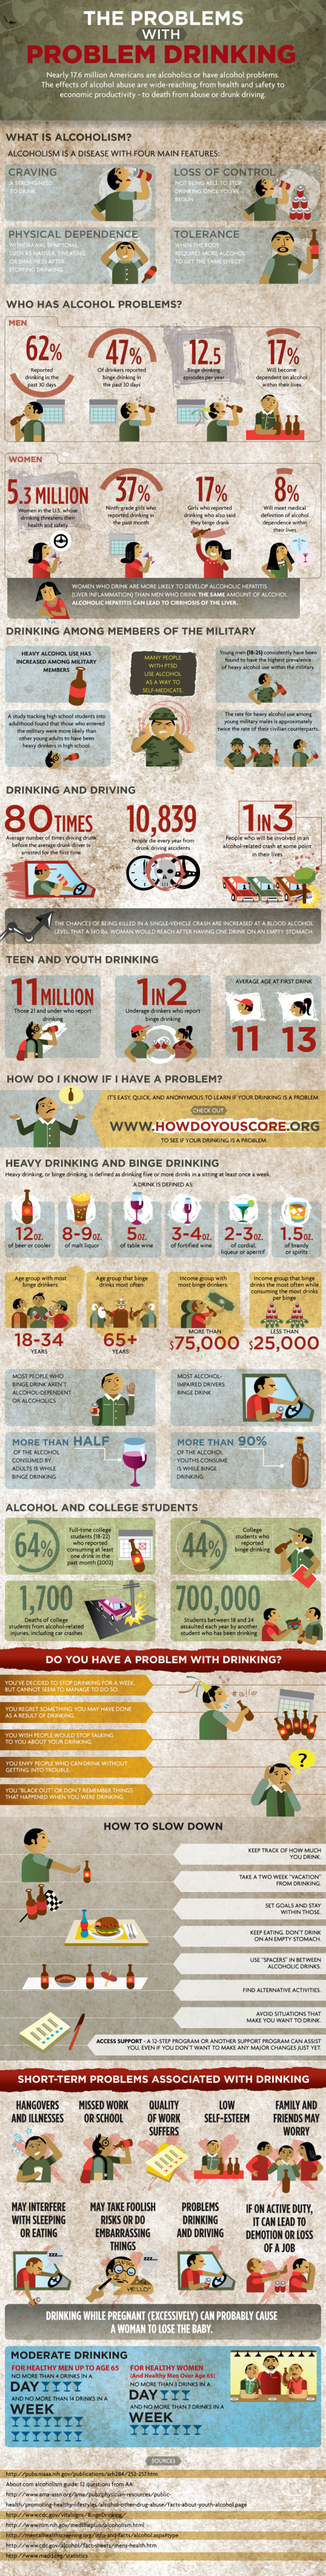 Am I an Alcoholic? � Alcohol Abuse Facts | Screening for Mental Health